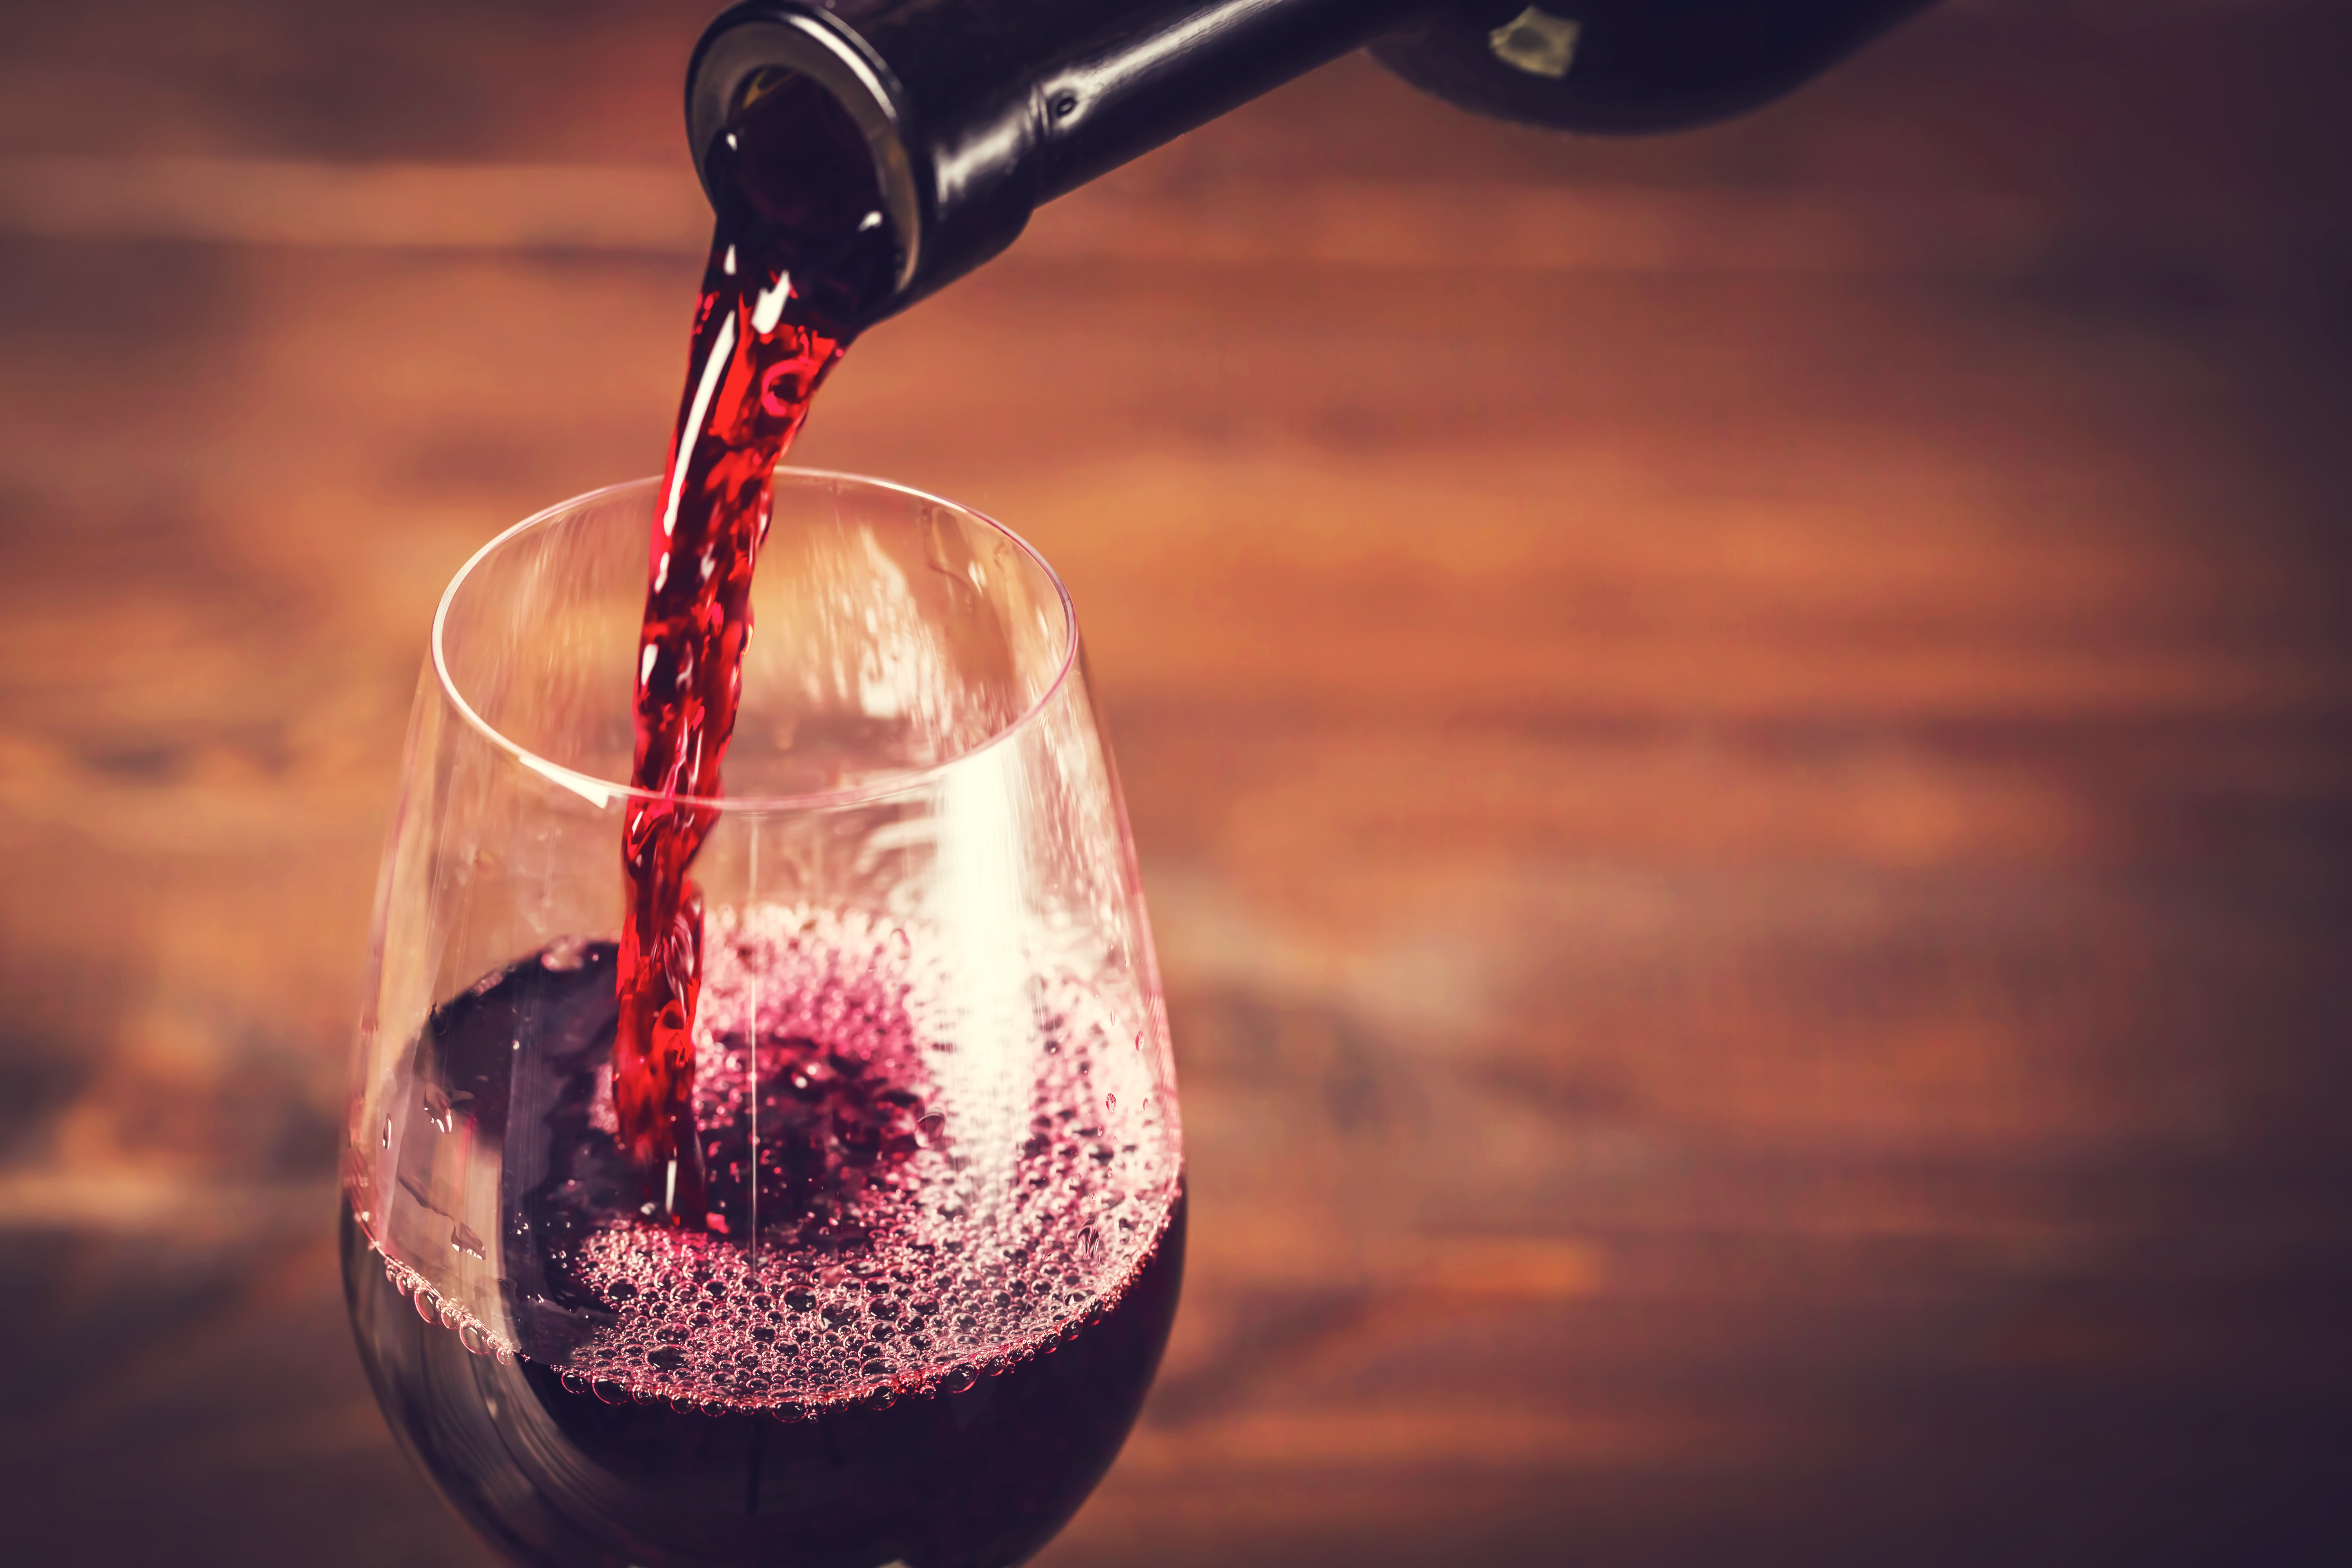 Bottle of red wine being poured into a glass